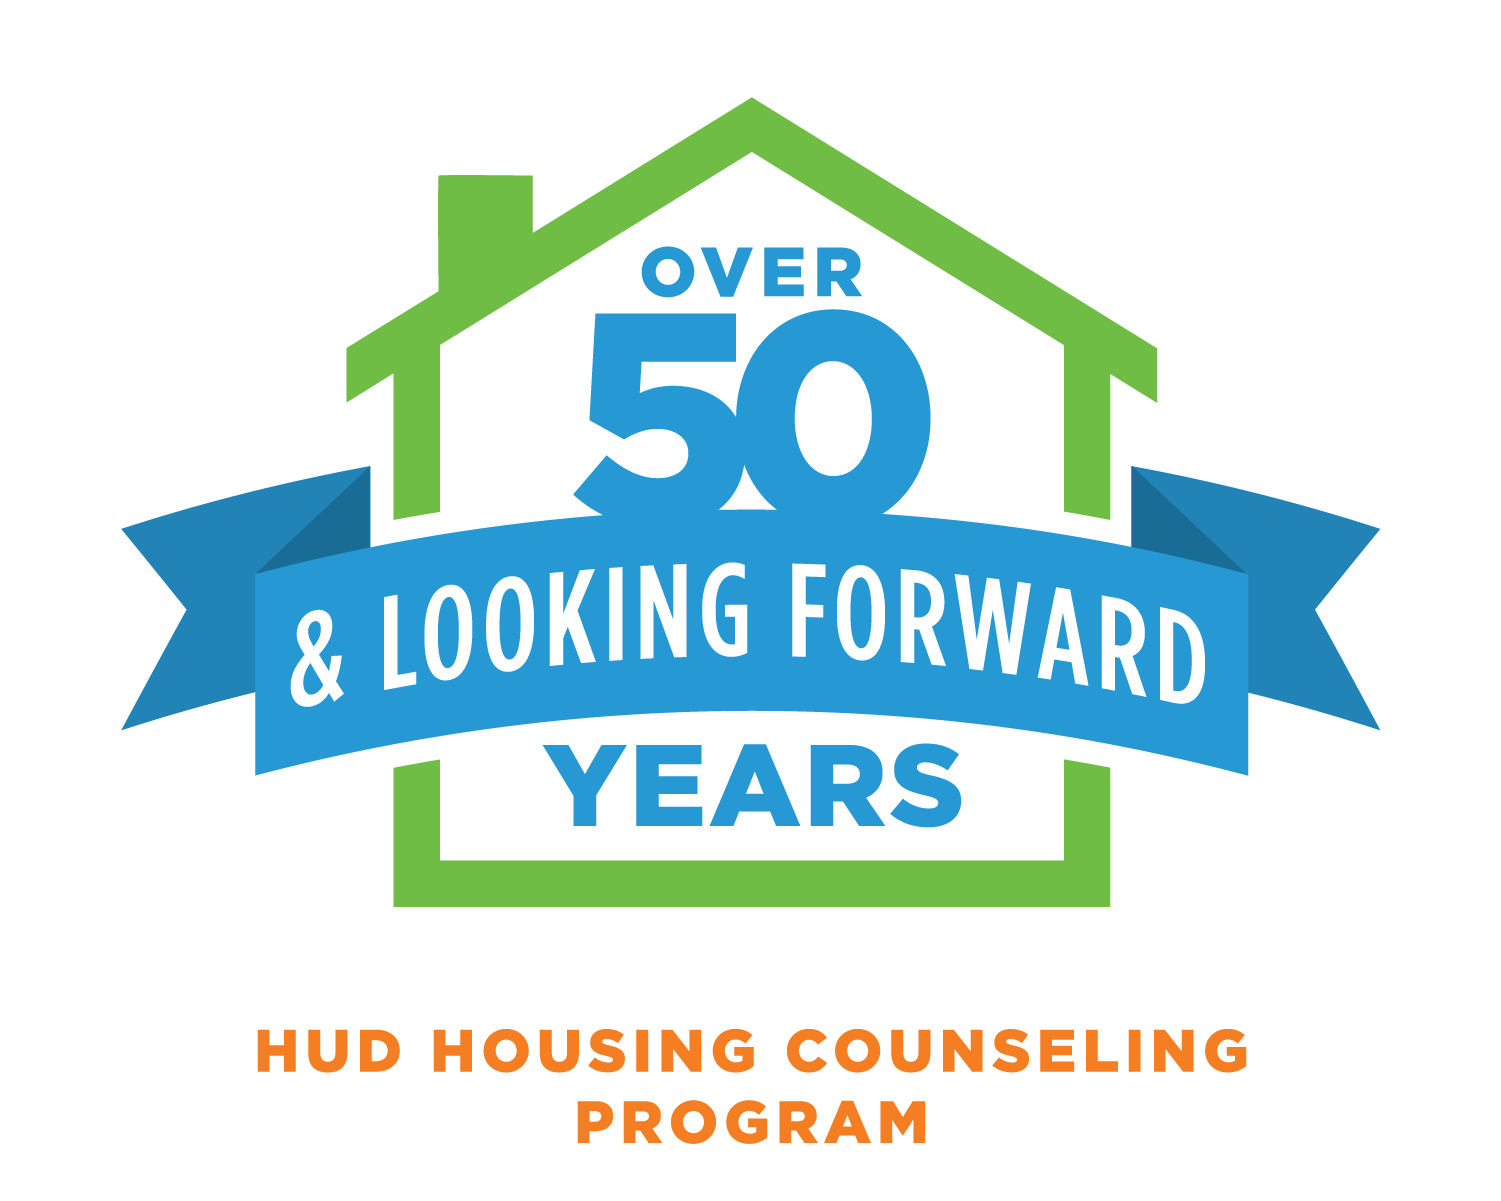 Housing Counseling 50th Anniversary